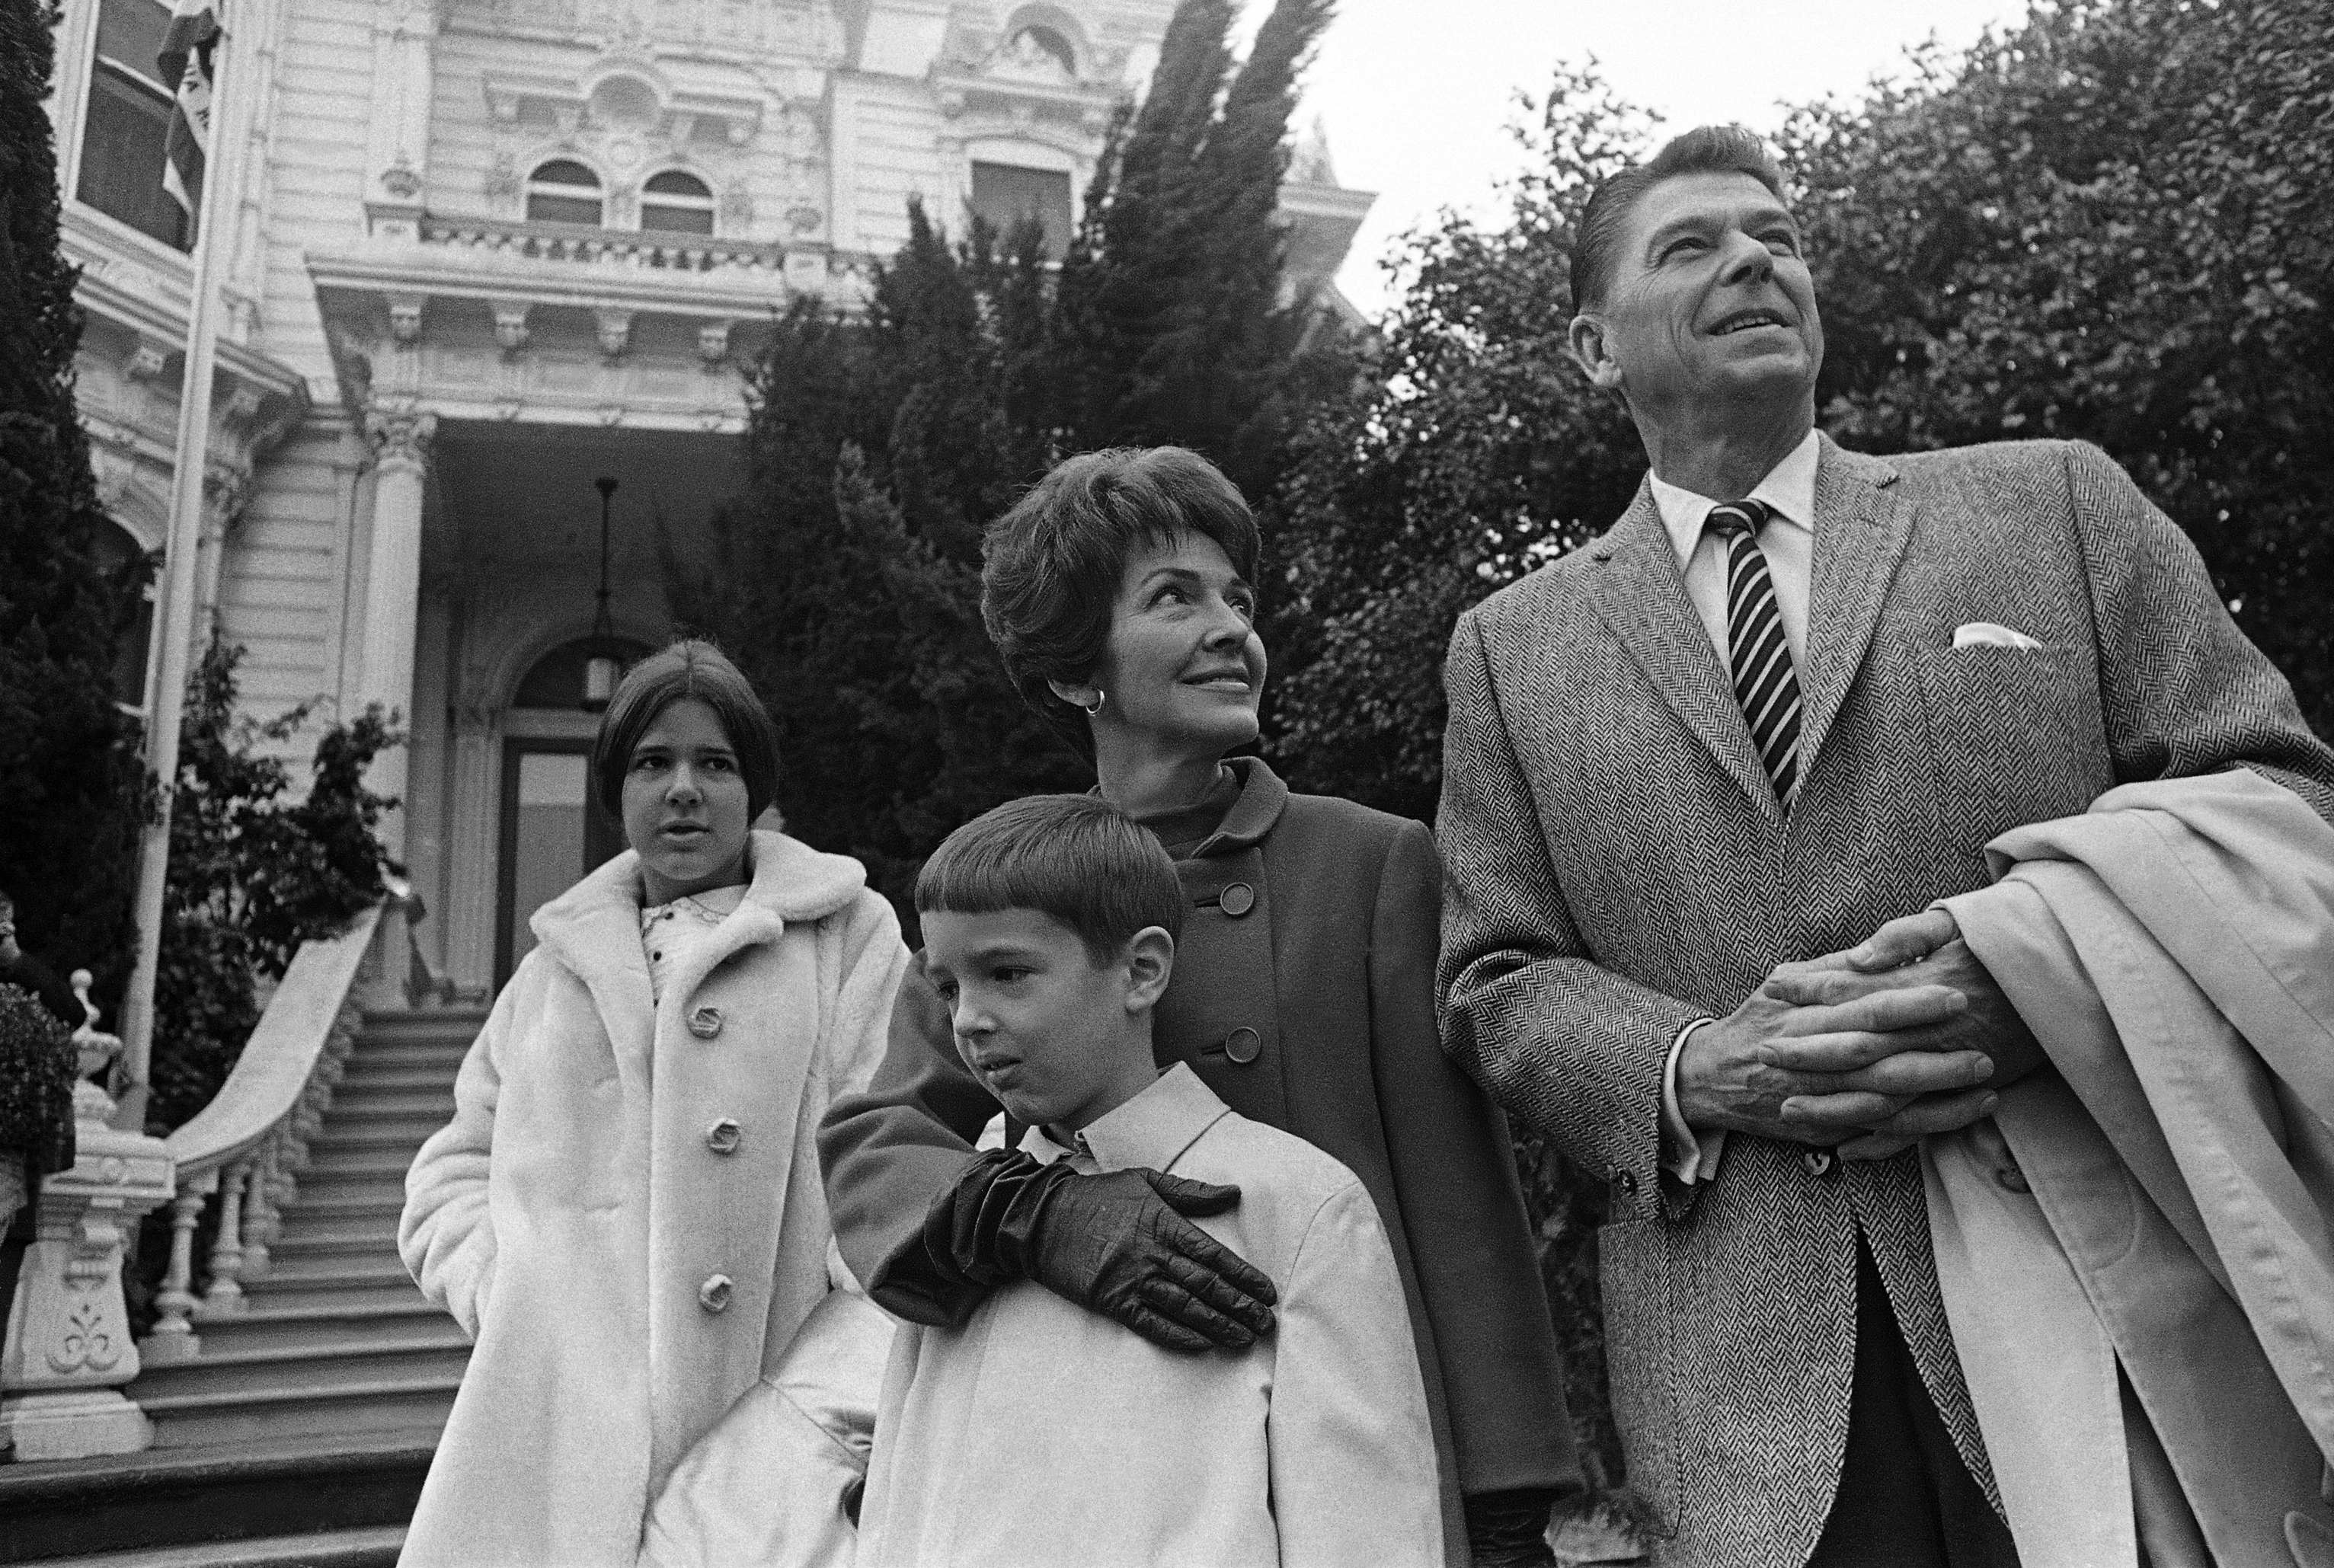 Then governor-elect of California Ronald Reagan is photographer with his wife, Nancy, and children Ronald Jr., 8, and Patricia, 13, outside the Executive Mansion in Sacramento, Calif., on Jan. 1, 1967.